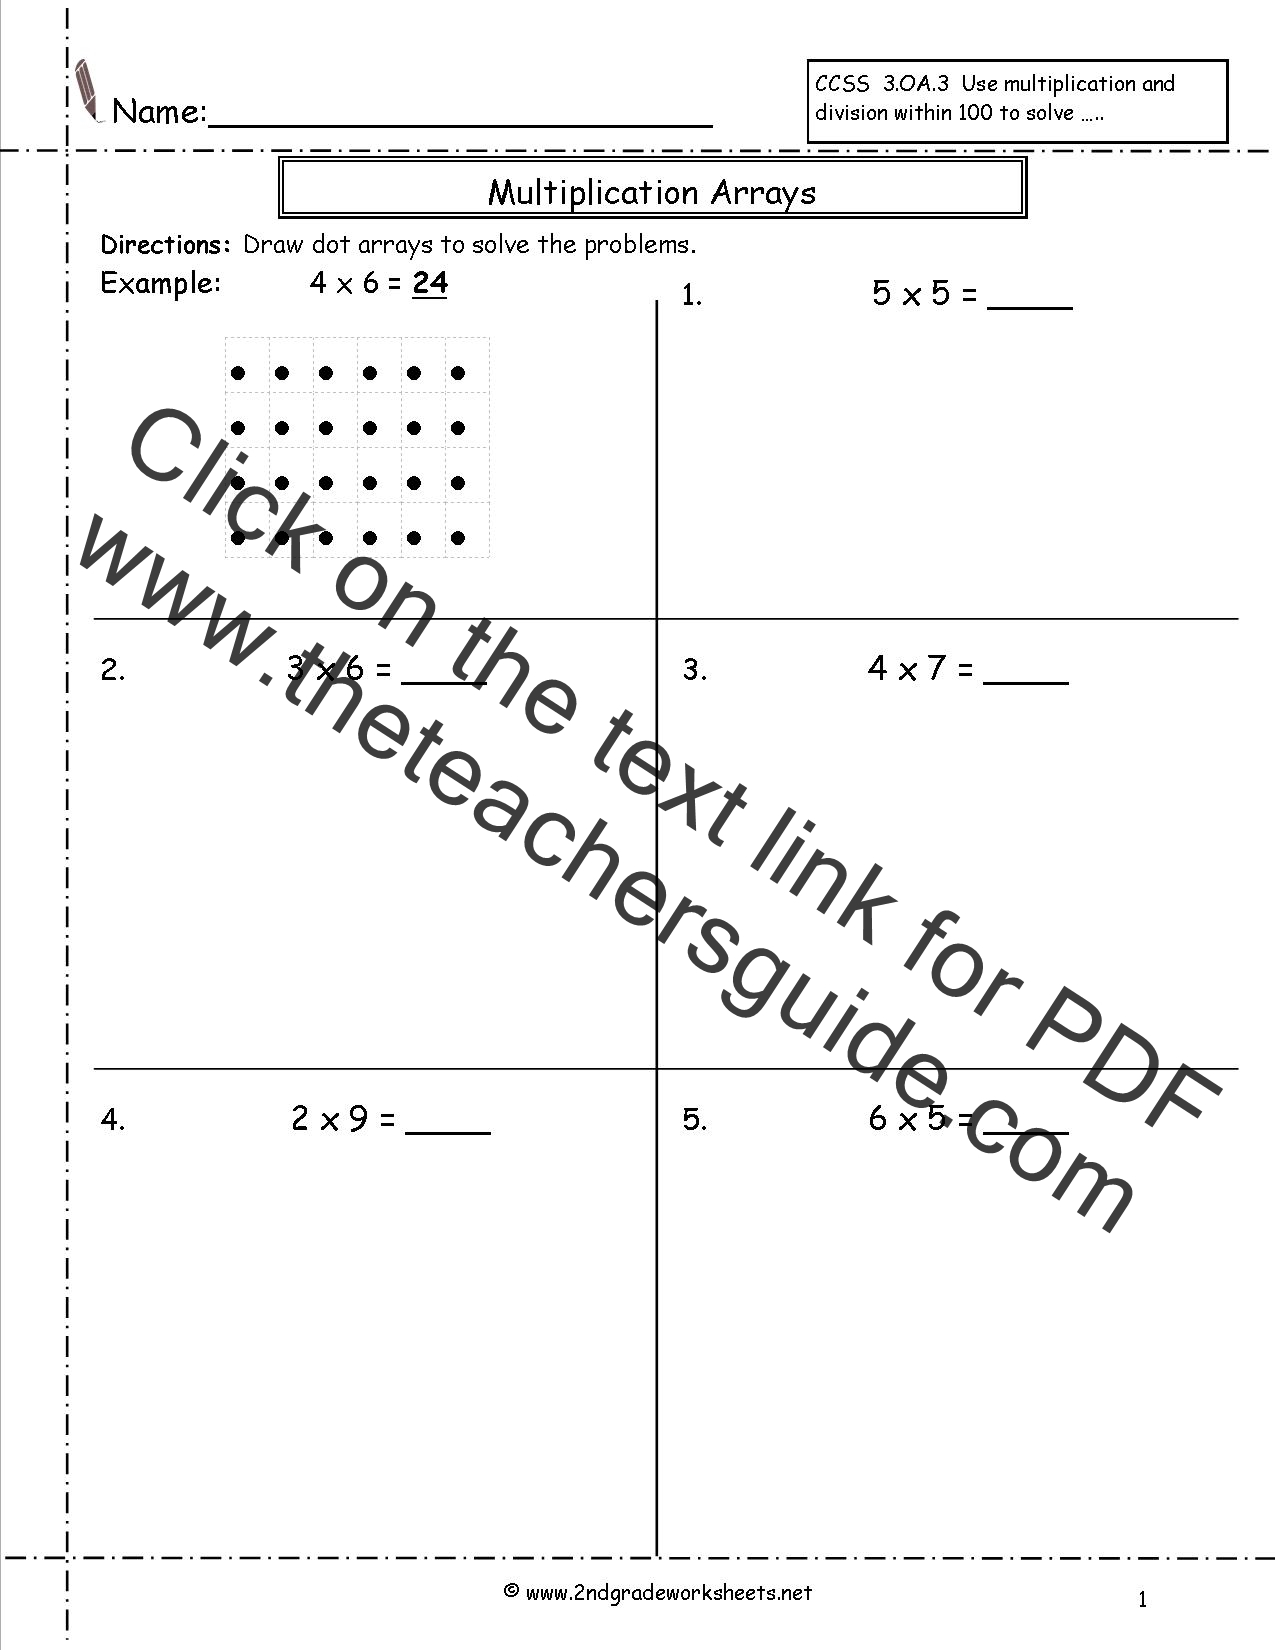 Multiplication Arrays Worksheets – Multiplication Array Worksheet